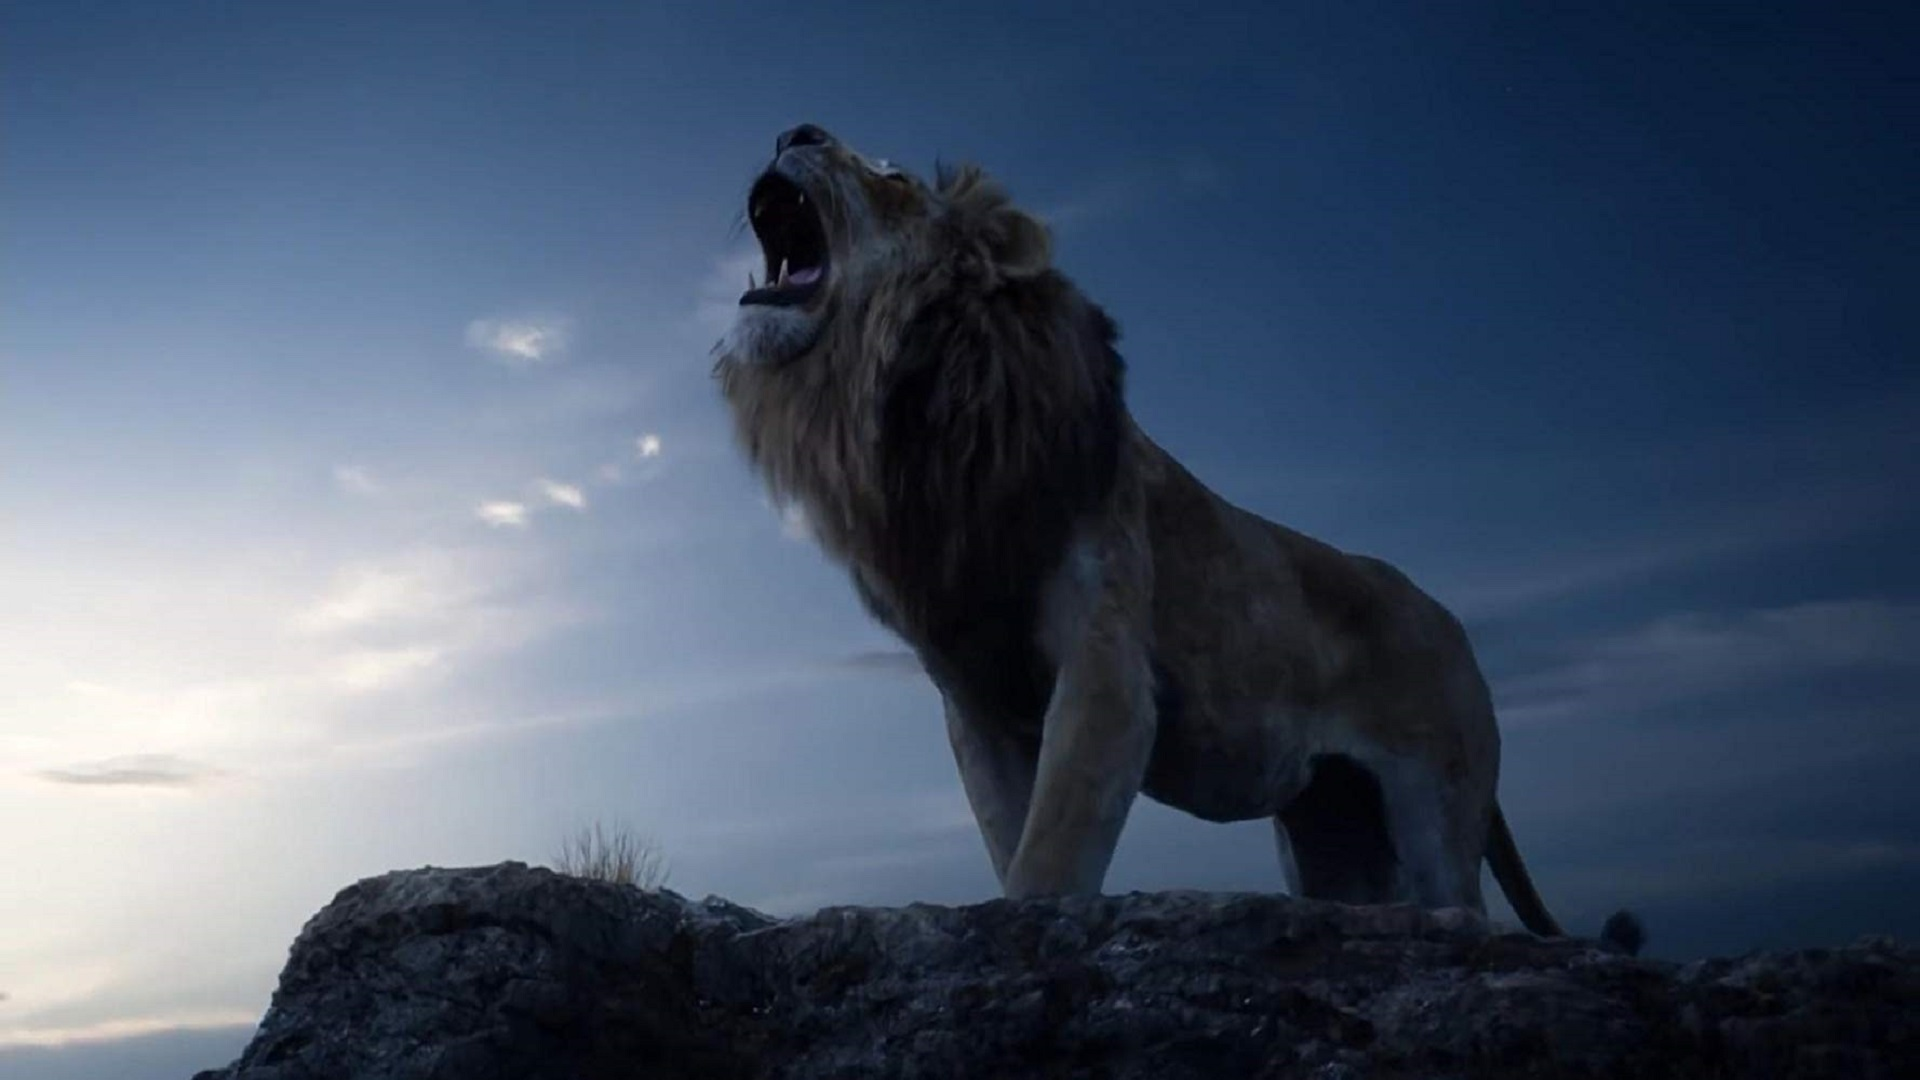 The lion king 2019 wallpapers backgrounds - Lion king wallpaper ...